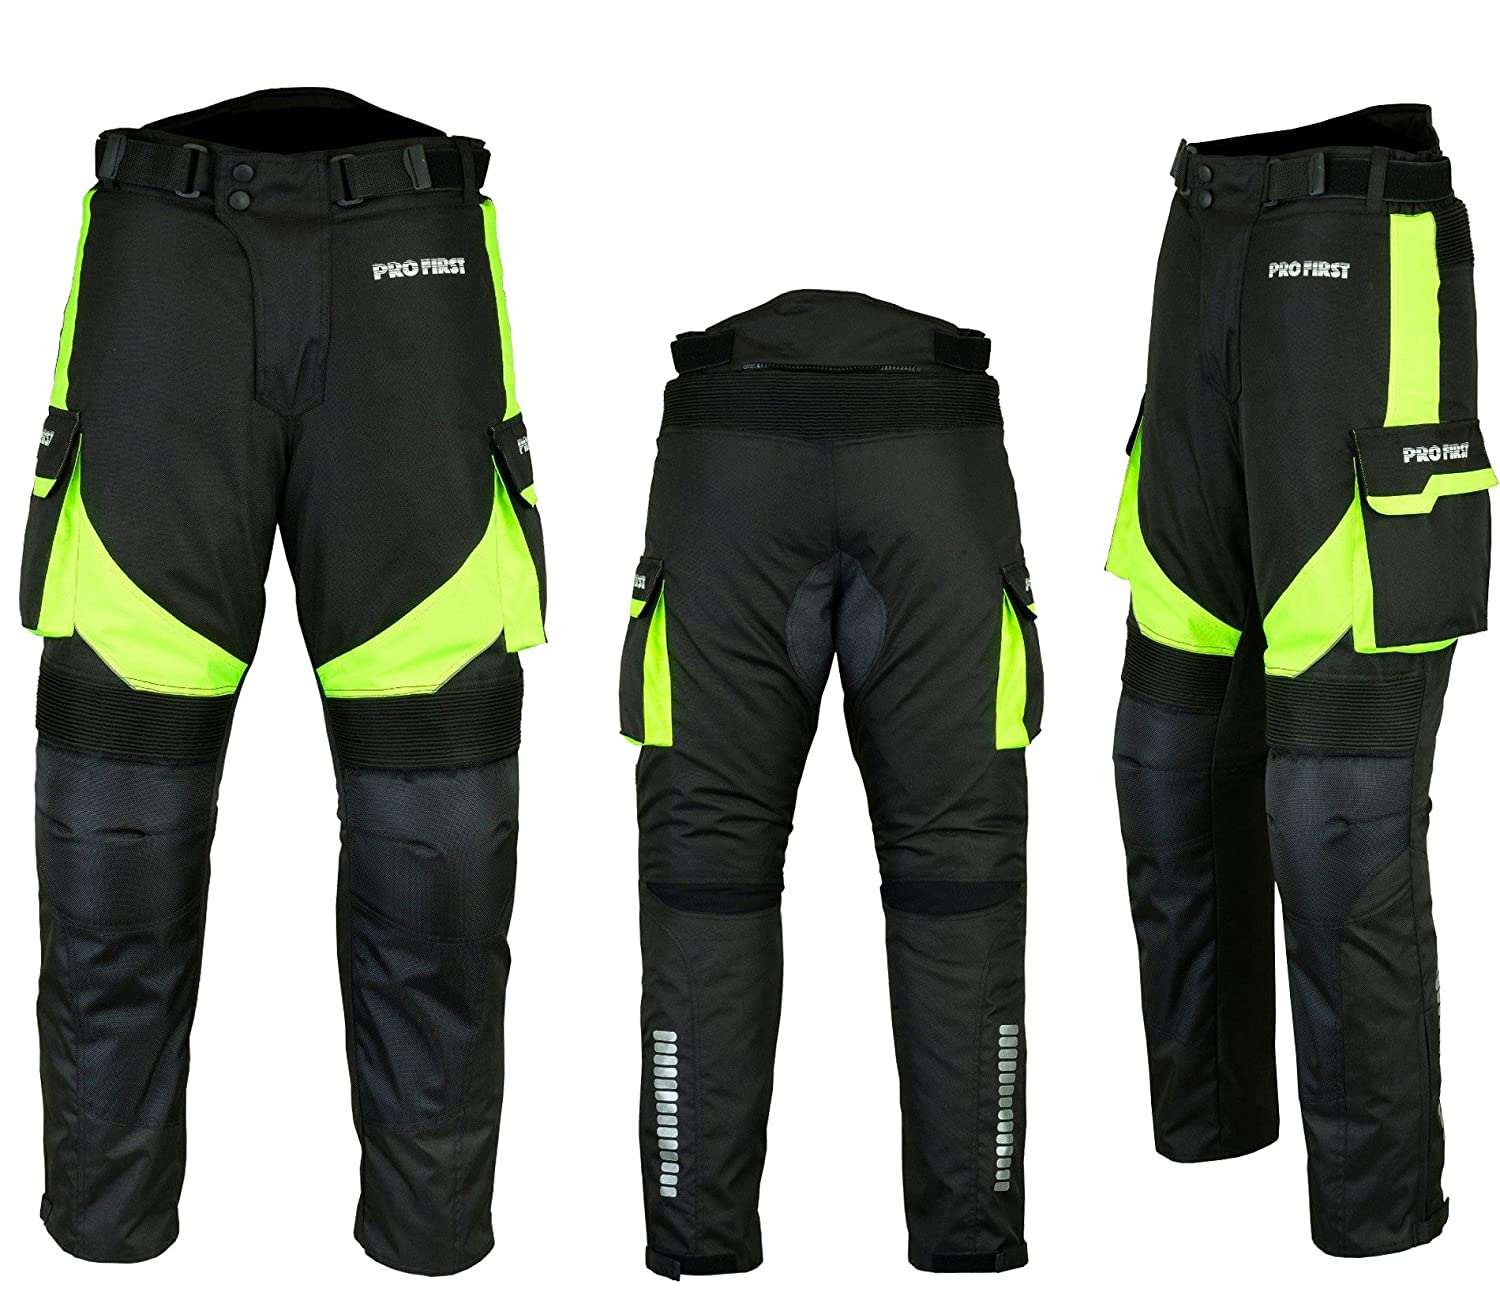 PROFIRST TR-001 Long Length Inside Leg 32 inch Green - XS to 4XL Removable Lining CE Approved Armoured Motorbike Motorcycle Trouser Pant Waterproof Big Pocket Design